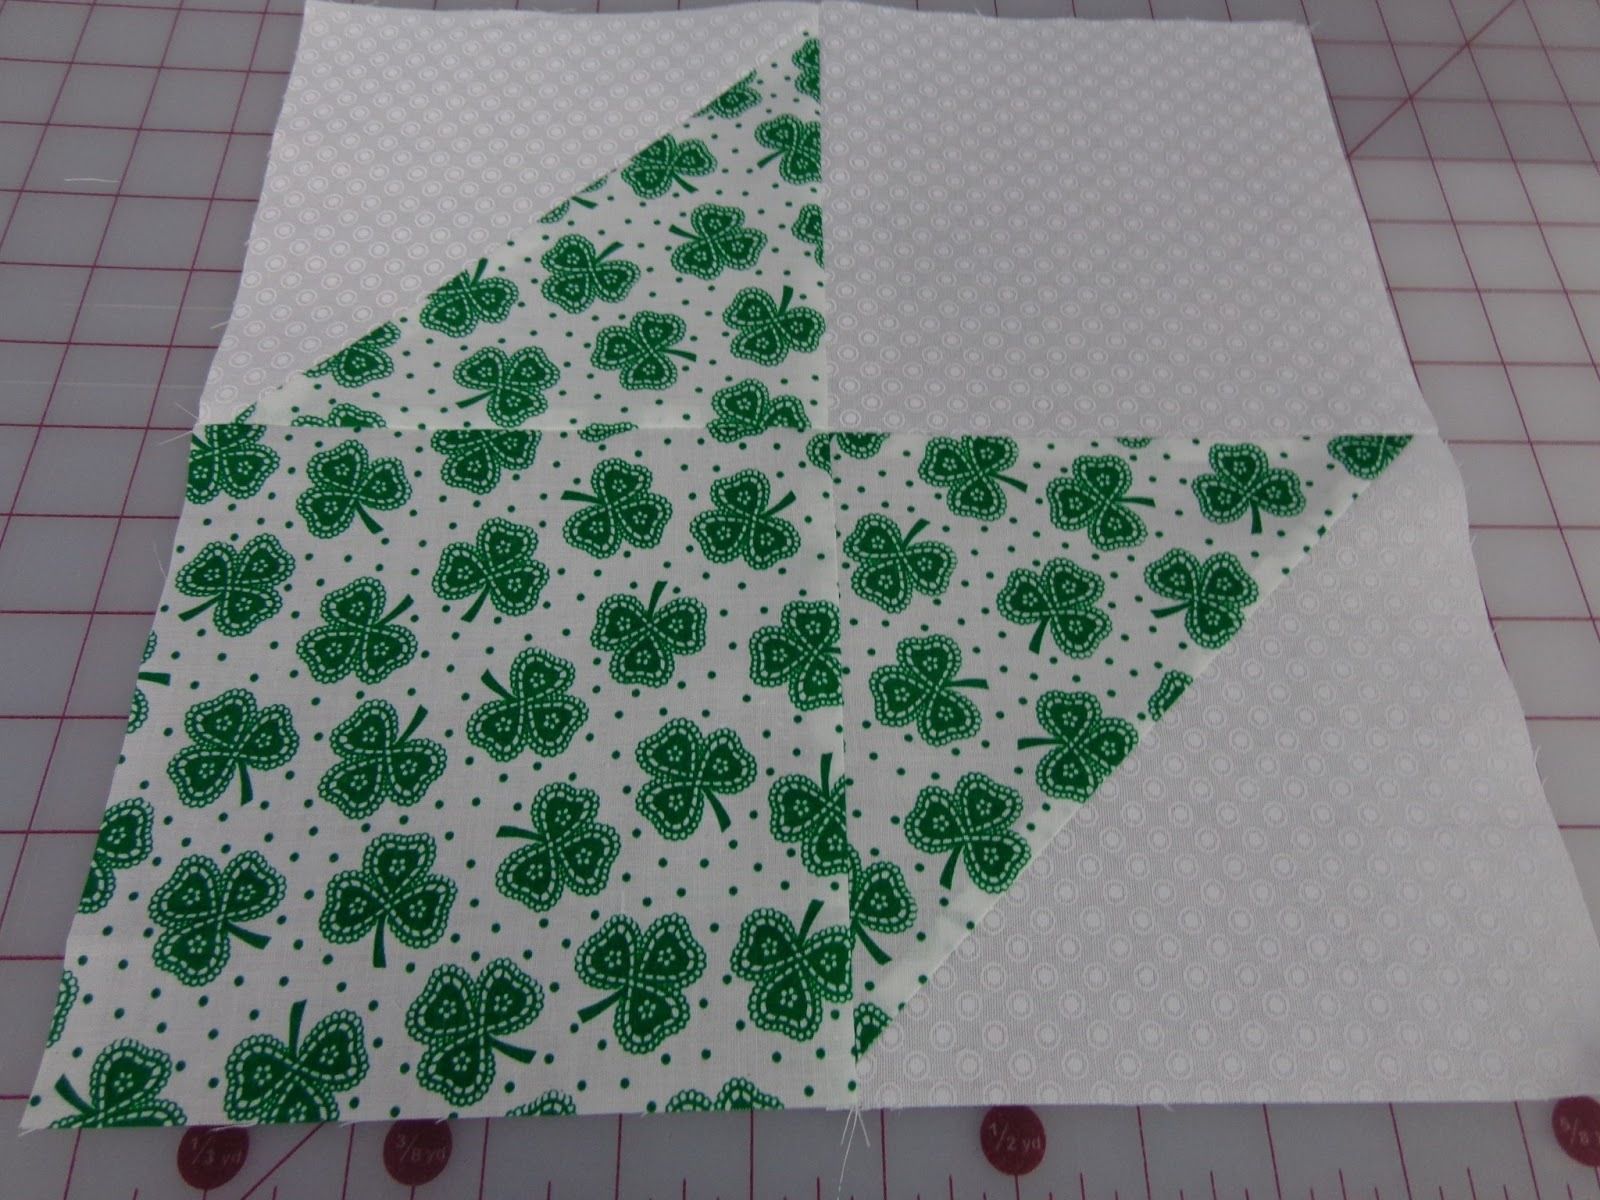 Simply Devine: An Irish Quilt for Charity